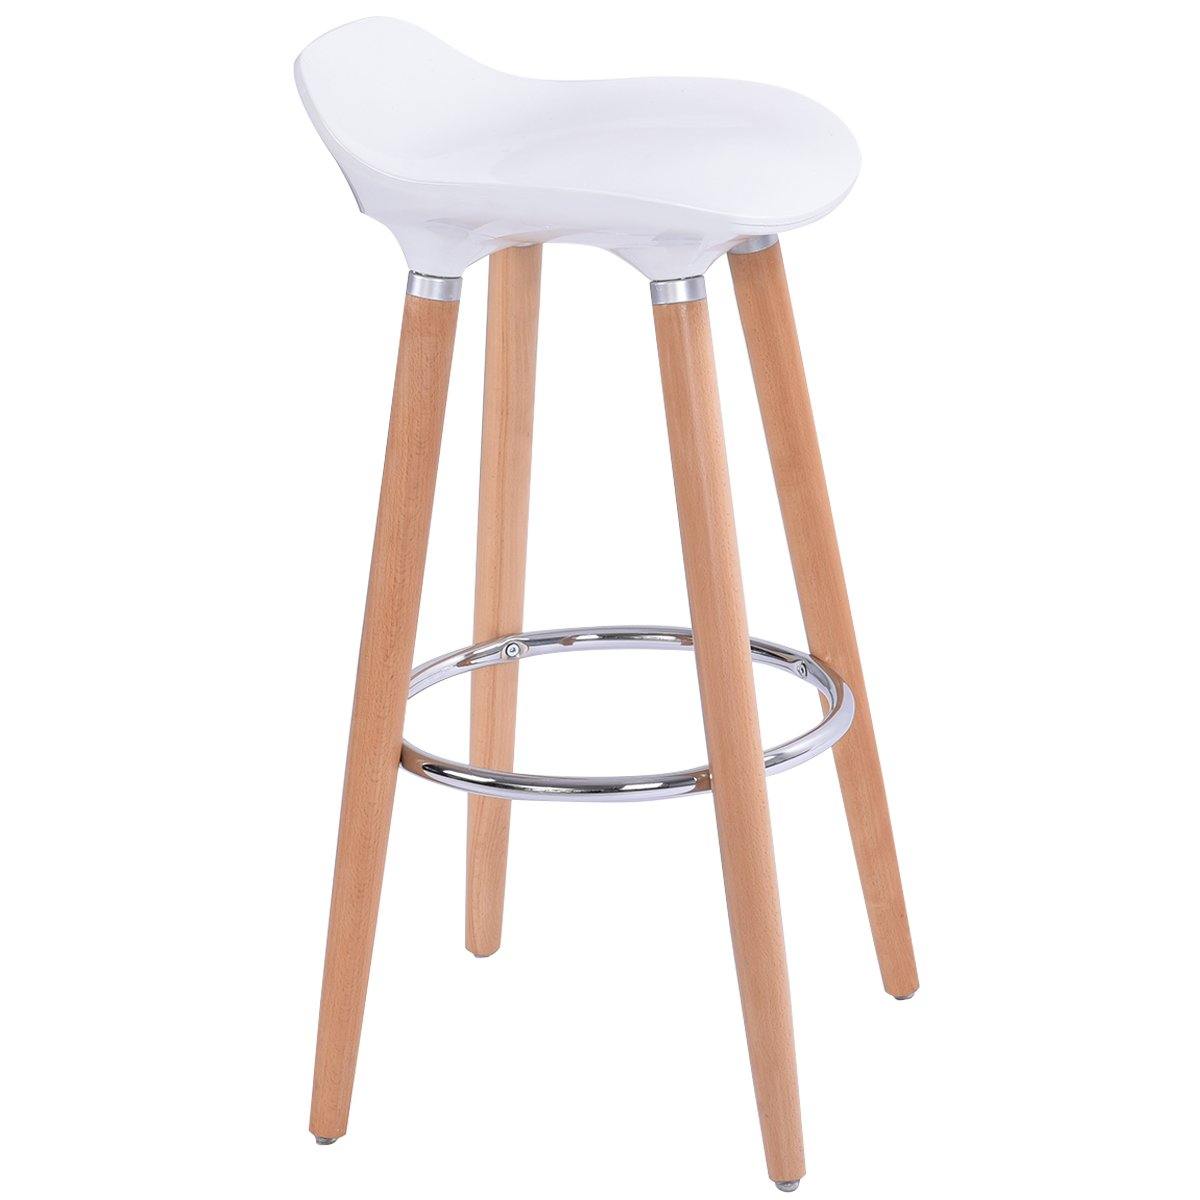 Costway White Bar Stool ABS Plastic, Kitchen Breakfast Barstool with Wooden Legs